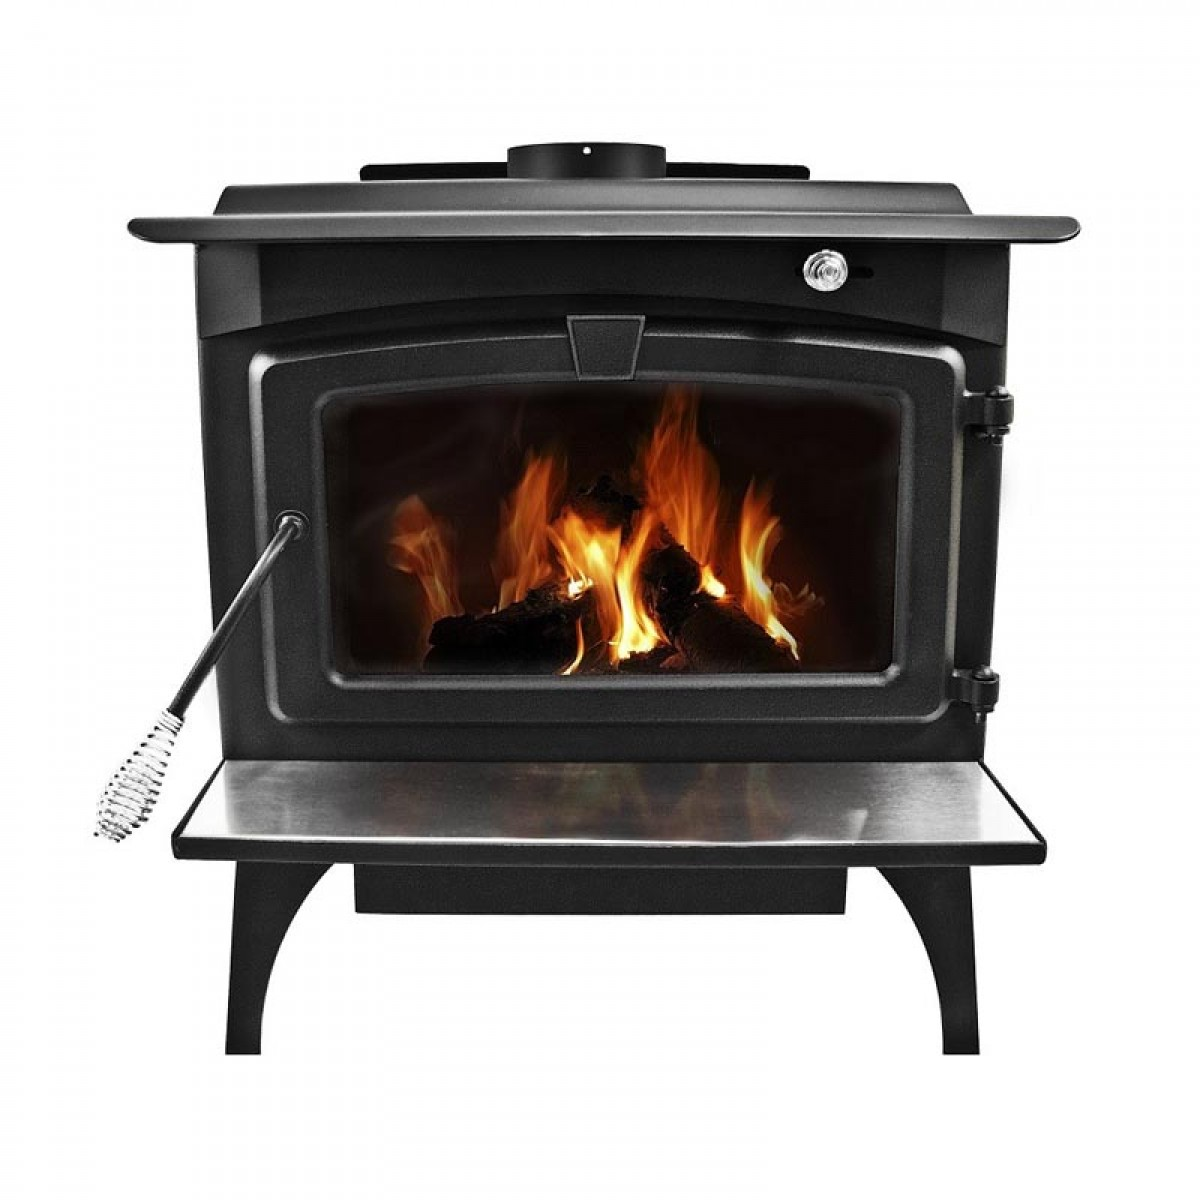 Pleasant Hearth Large Wood Burning Stove With Legs Lws 130291